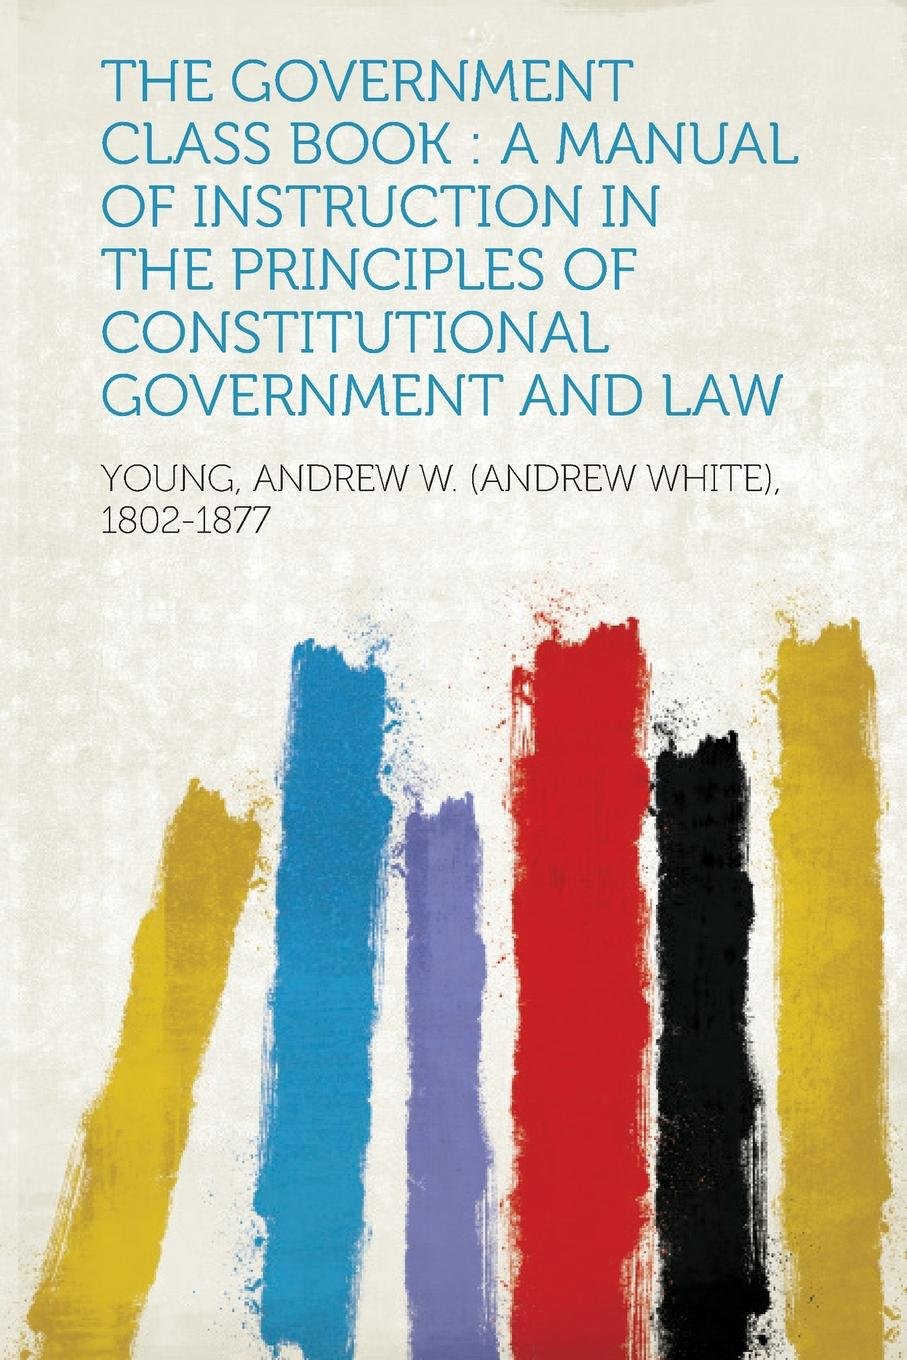 The Government Class Book: A Manual of Instruction in the Principles of  Constitutional Government and Law: Young Andrew W. (Andrew Whit 1802-1877:  ...